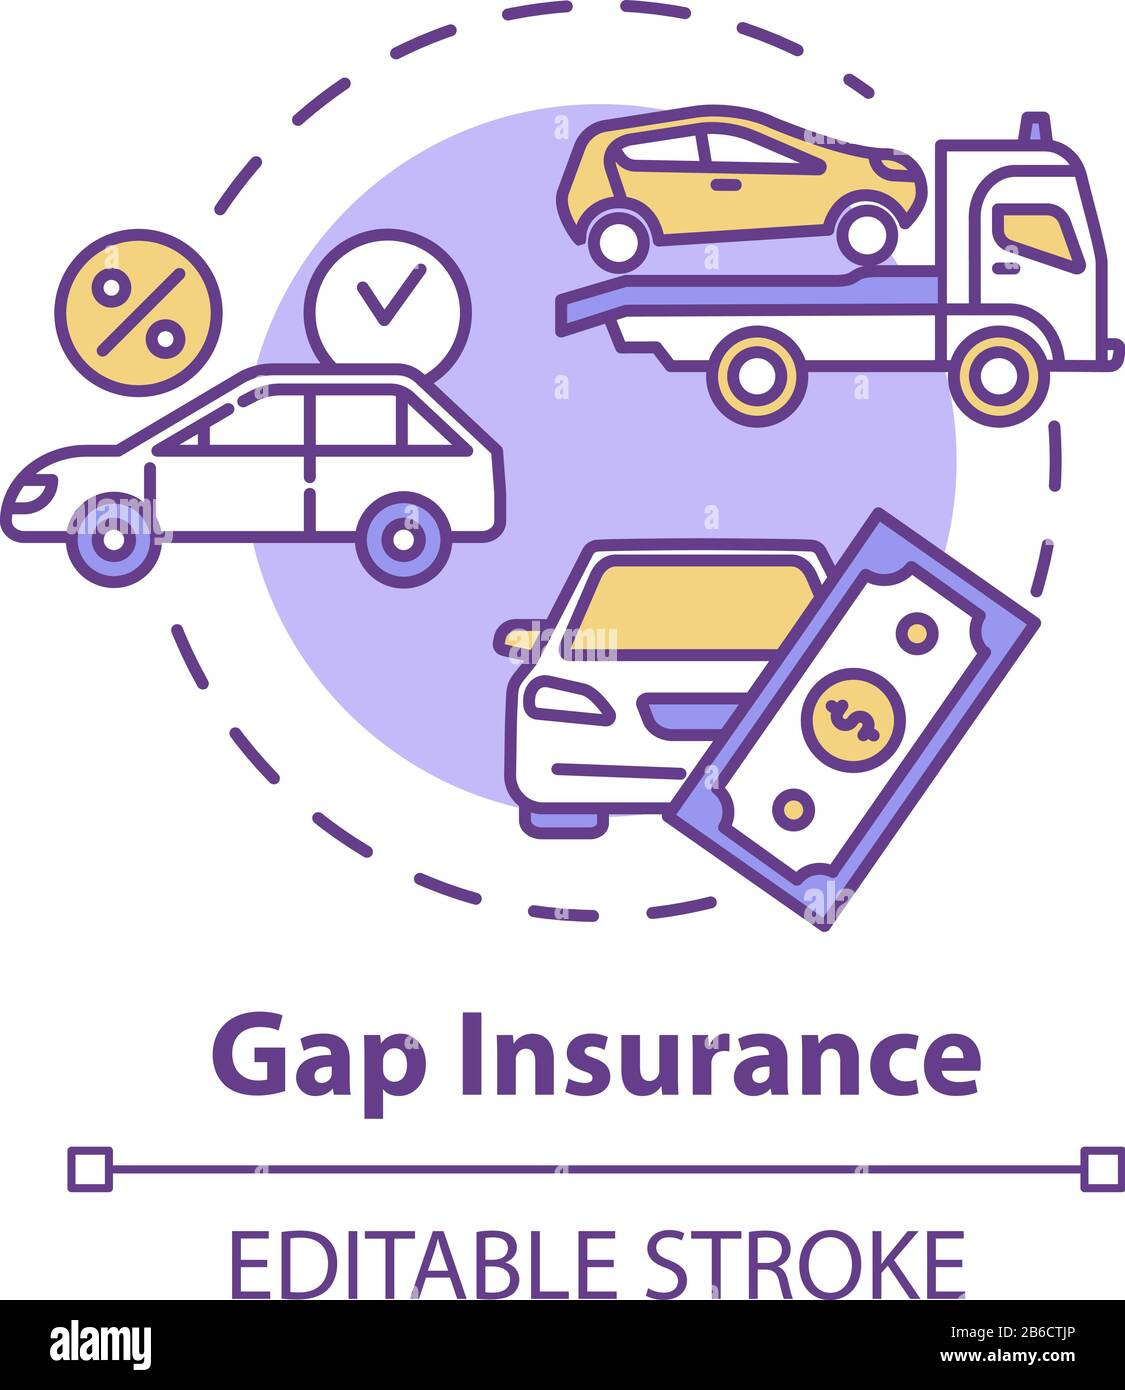 Gap insurance concept icon. Refund for car cost difference. Damage from accident. Financial aid idea thin line illustration. Vector isolated outline Stock Vector